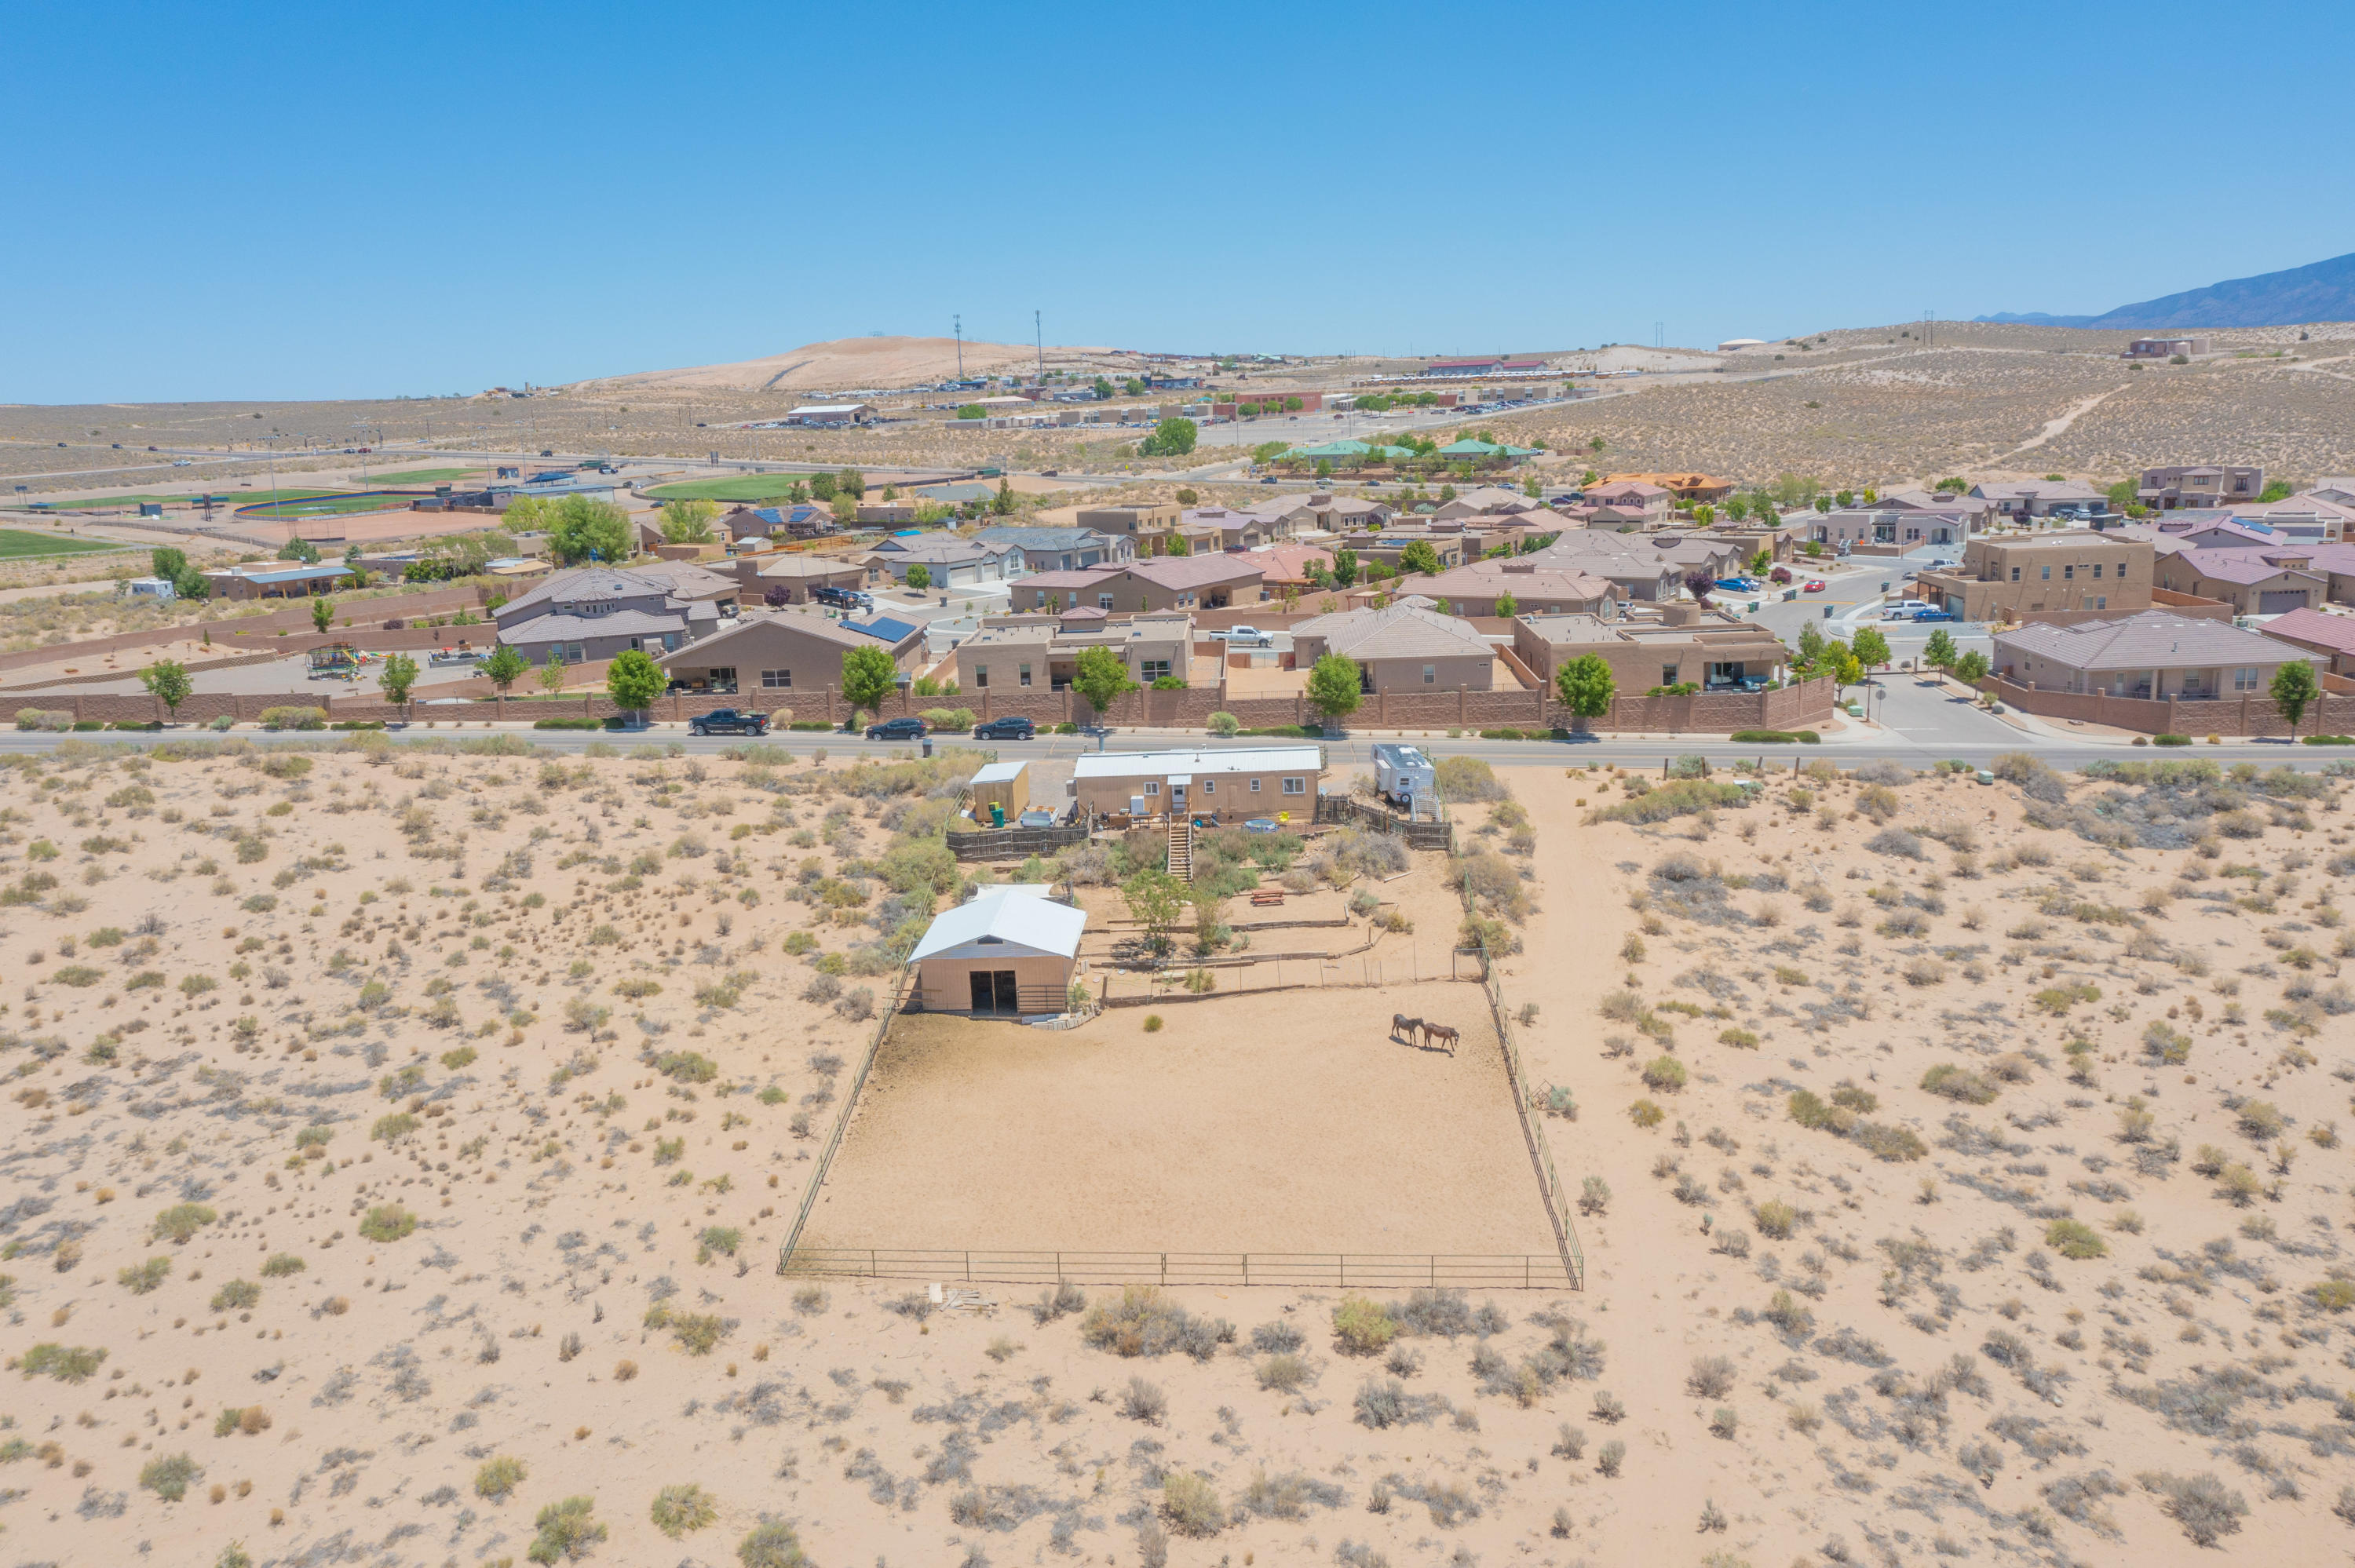 Rarely available 5 acre parcel with cute mobile home on A-R (Agricultural Residential) zoned land in Rio Rancho!  This property consists of 2 side by side parcels that are 2.457 acres and 2.544 acres respectively.  Mobile home is currently assessed as personal property.  Utilities are in including a well, septic tank, gas and electricity.  A barn with water and a corral are on the property as well.....bring your horses!  Permissive uses include Raising of nursery products, Agricultural activity, Churches, and more!  Come check out this unique and private property today!